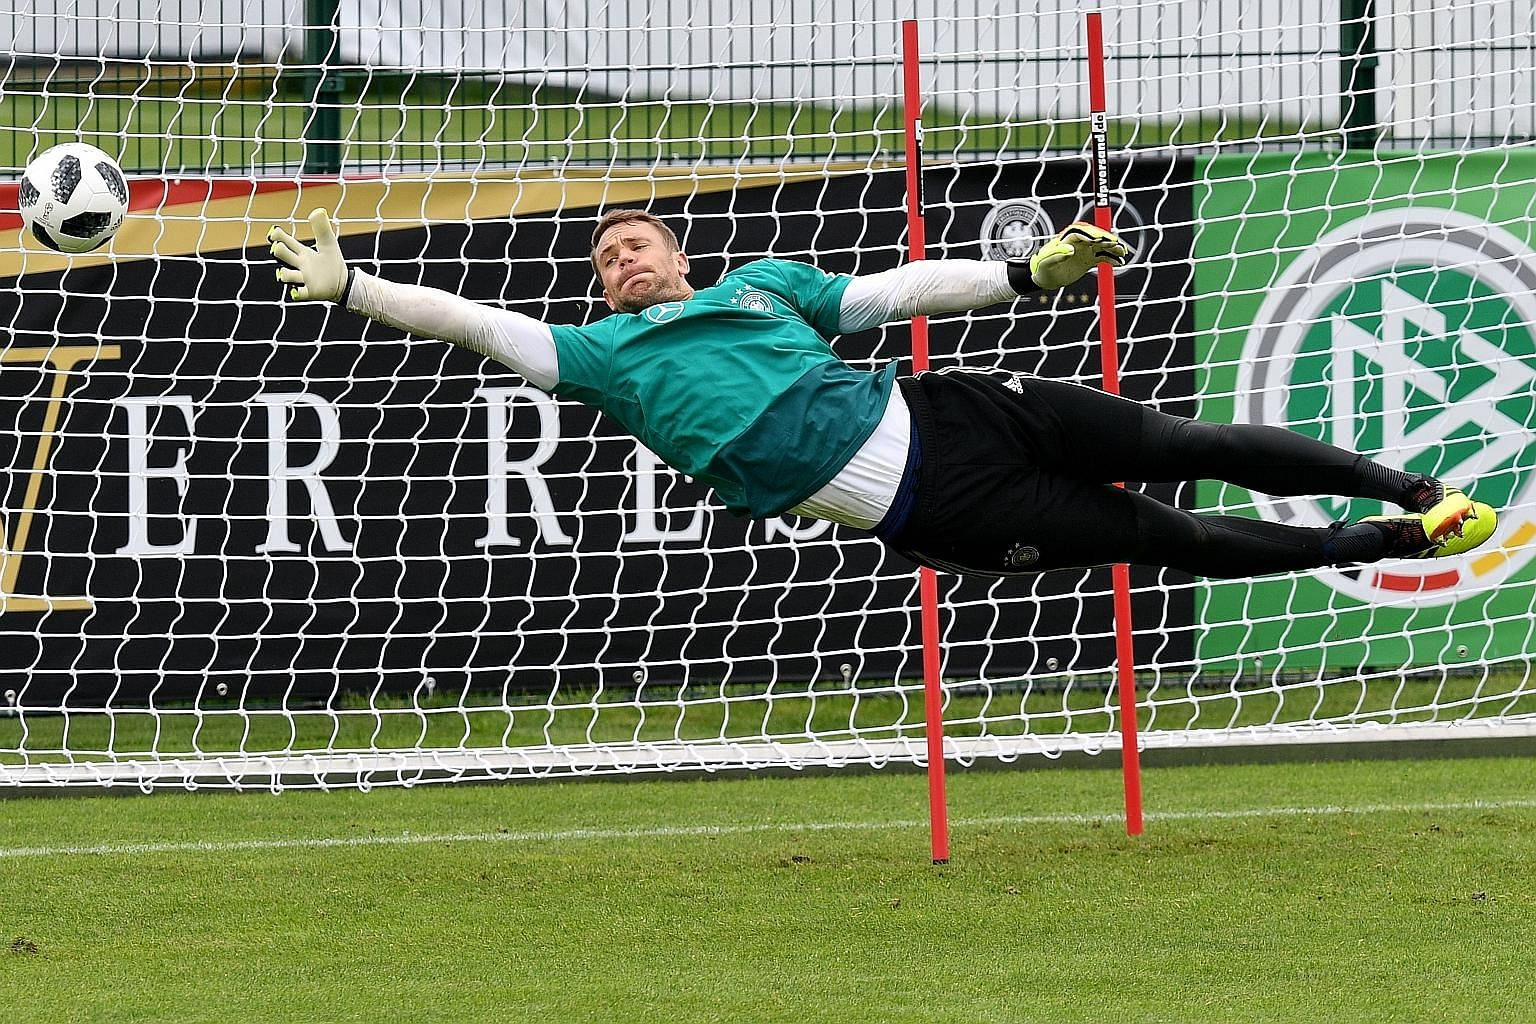 Germany goalkeeper Manuel Neuer participating in a training session in Eppan, Italy, yesterday. The 32-year-old captain has not played since breaking a bone in his foot in September but is now recovering after surgery.